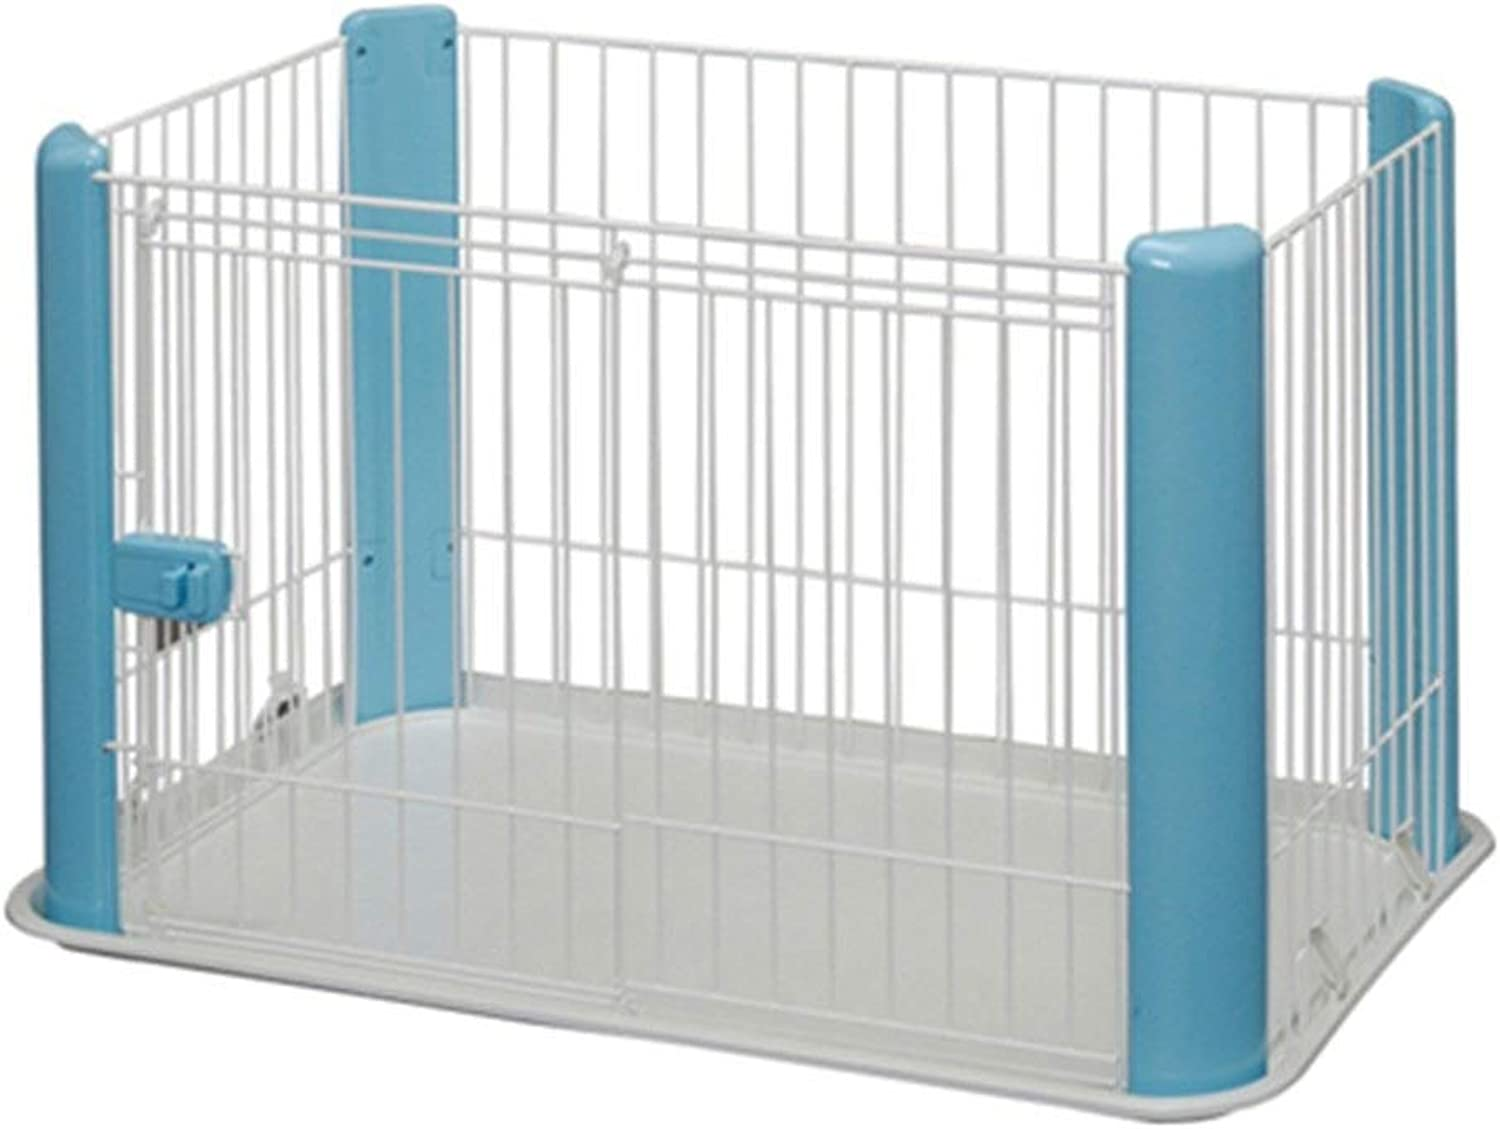 KXBYMX11 Dog cage small and medium dog fence portable white baby fence with door activity center indoor outdoor travel Safety fence (color   bluee)